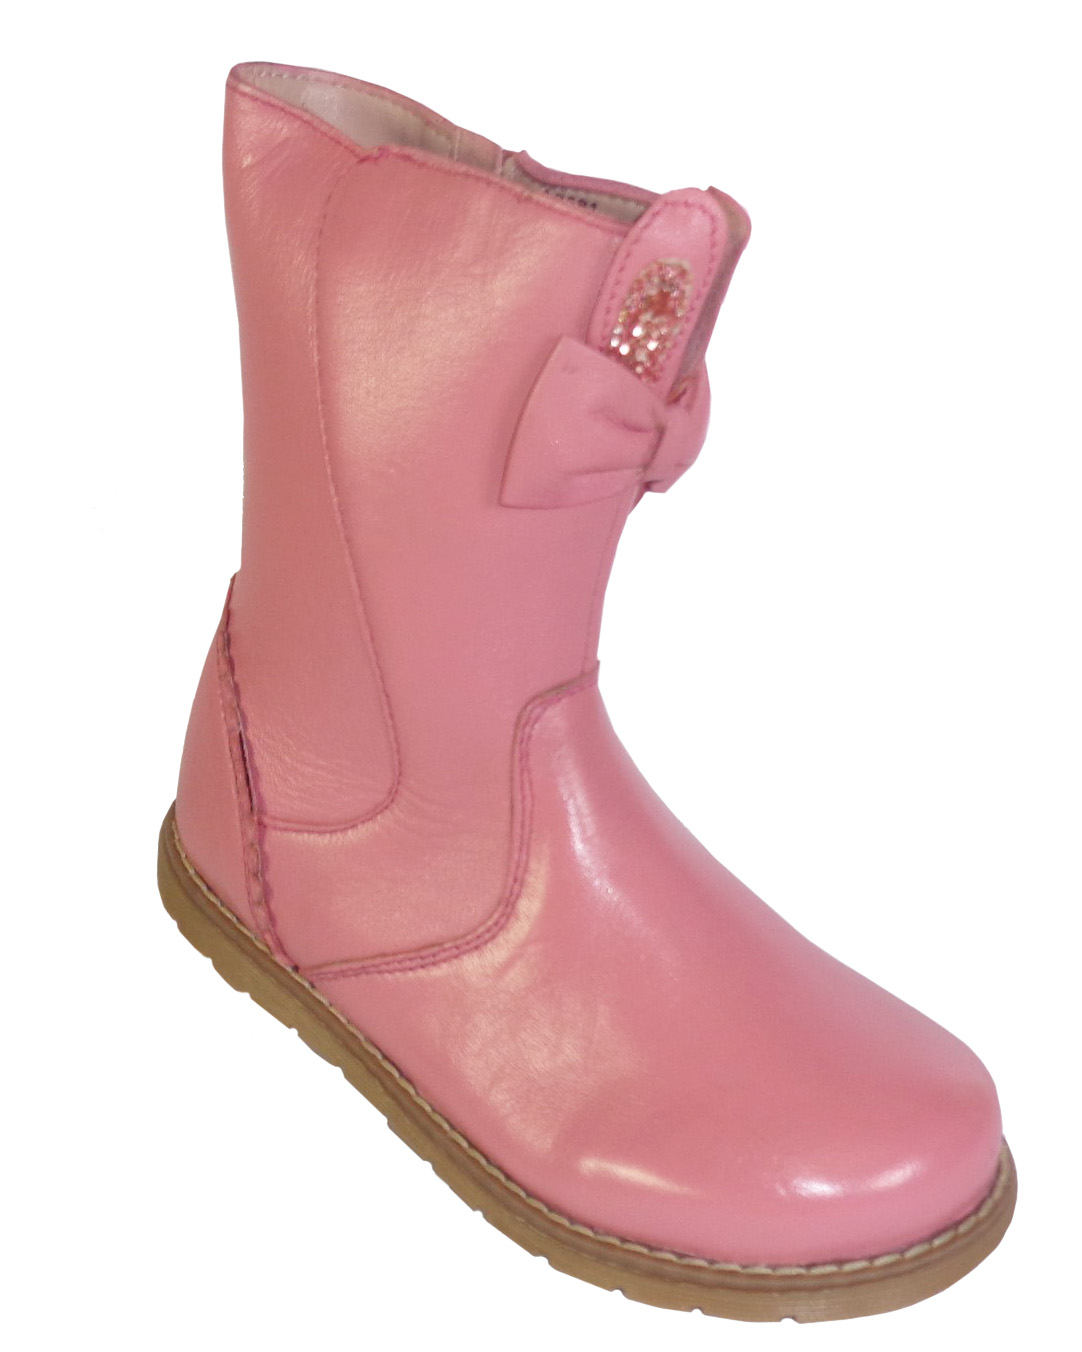 Girls pink leather boots